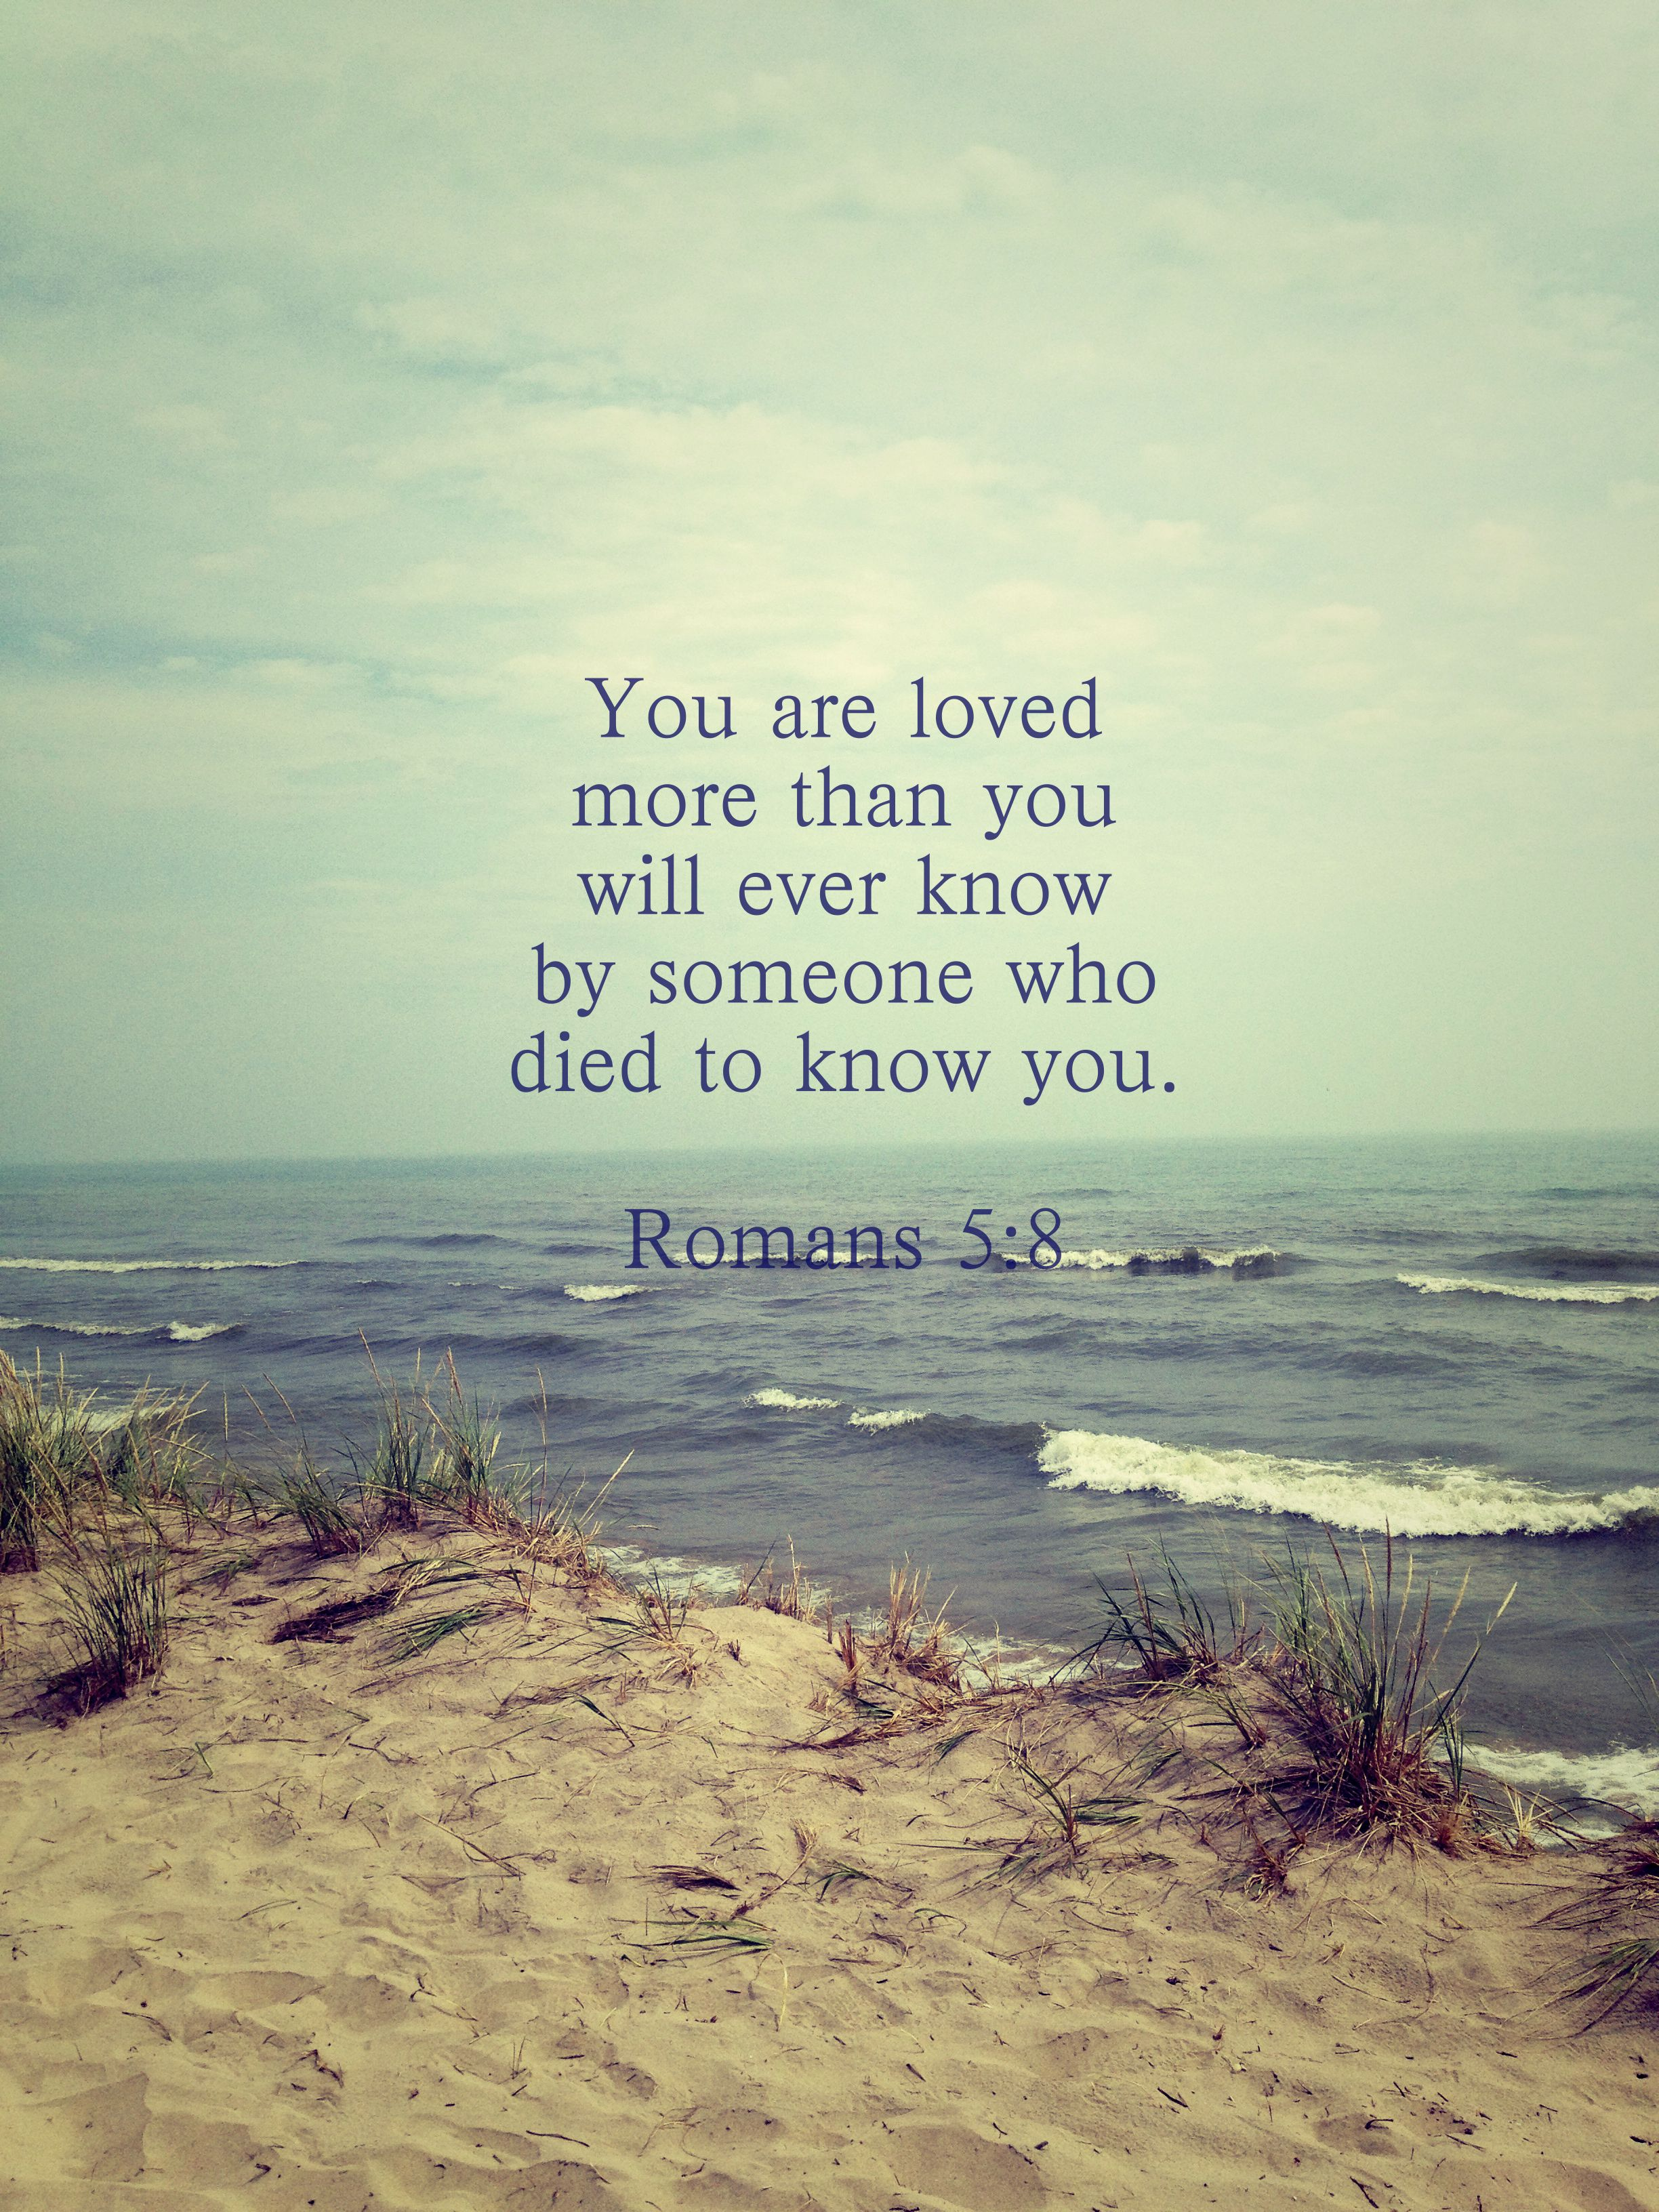 You are loved more than you will ever know by someone who d to Bible Verses QuotesInspirational